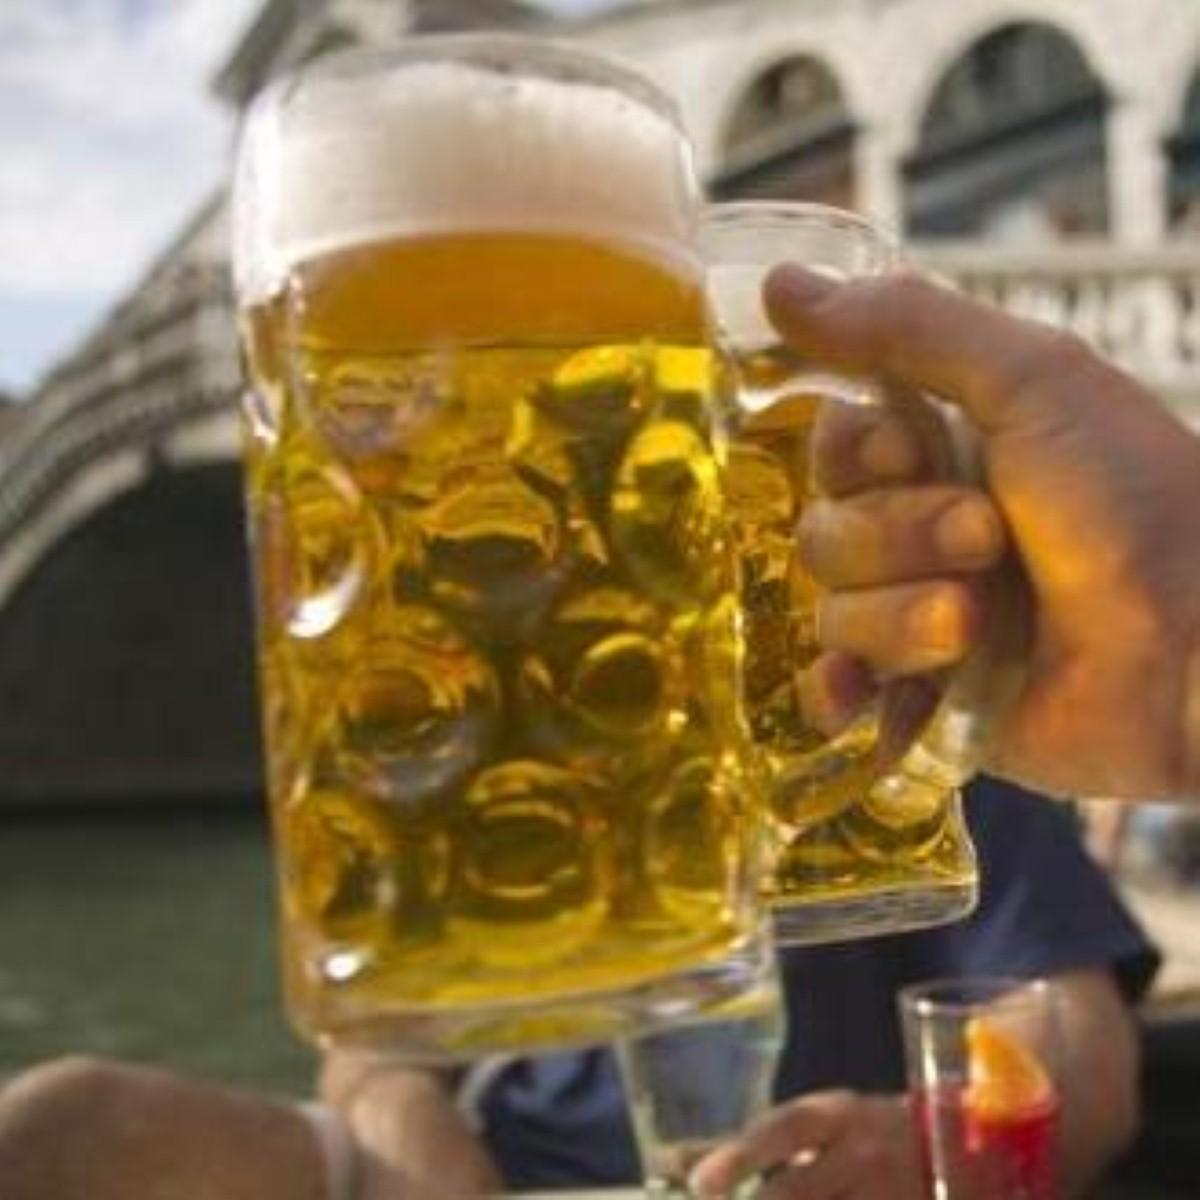 Alcohol and infection 'increase stroke risk'